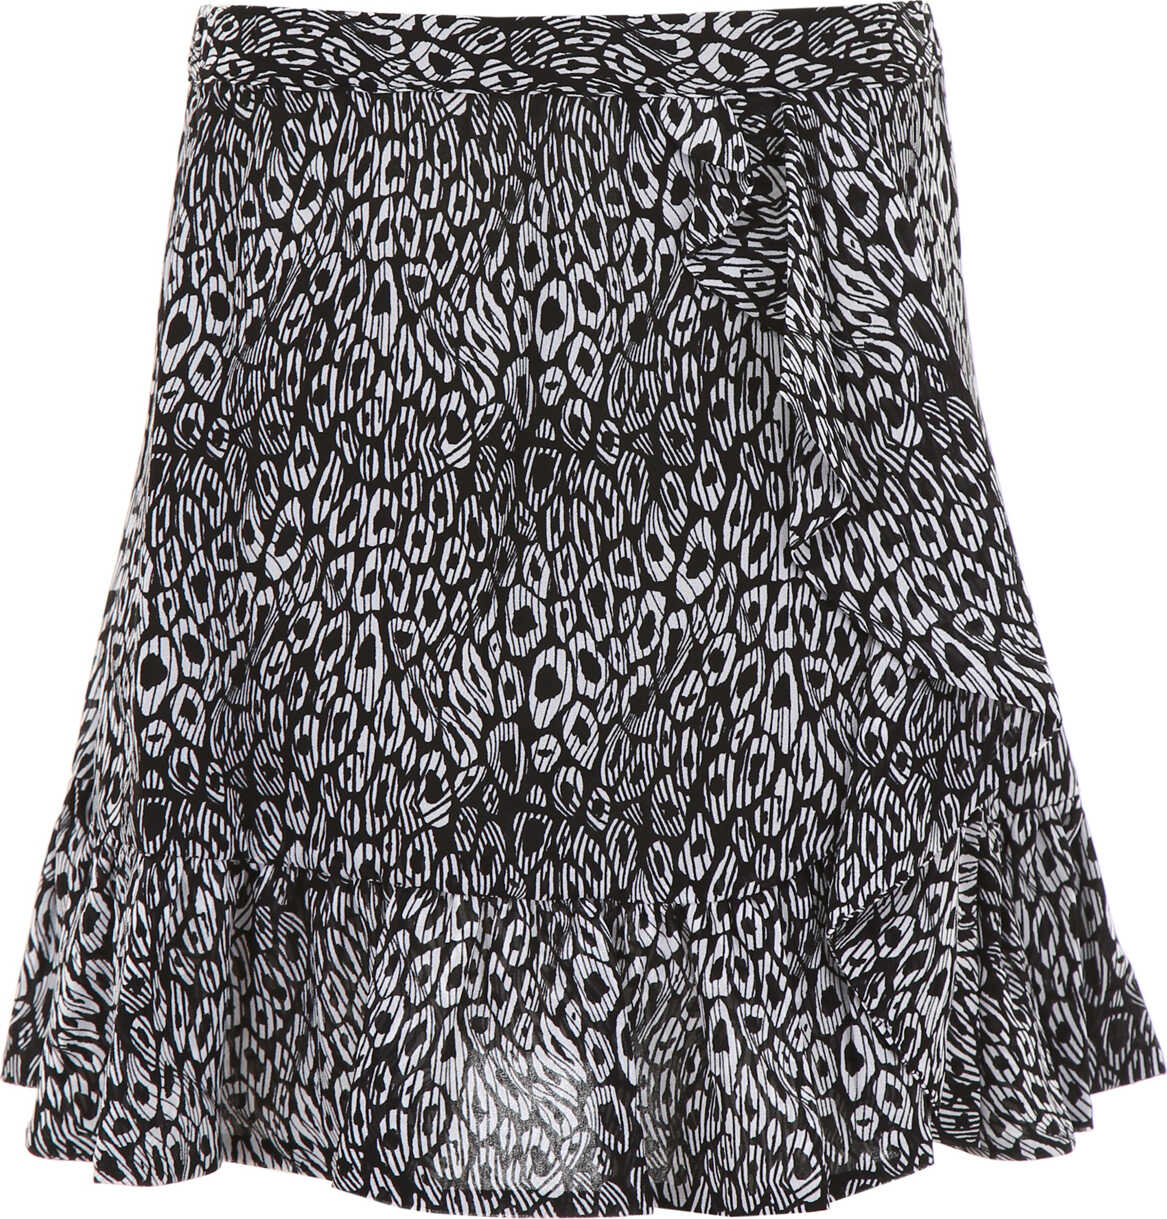 Michael Kors Ruffled Mini Skirt BLACK WHITE